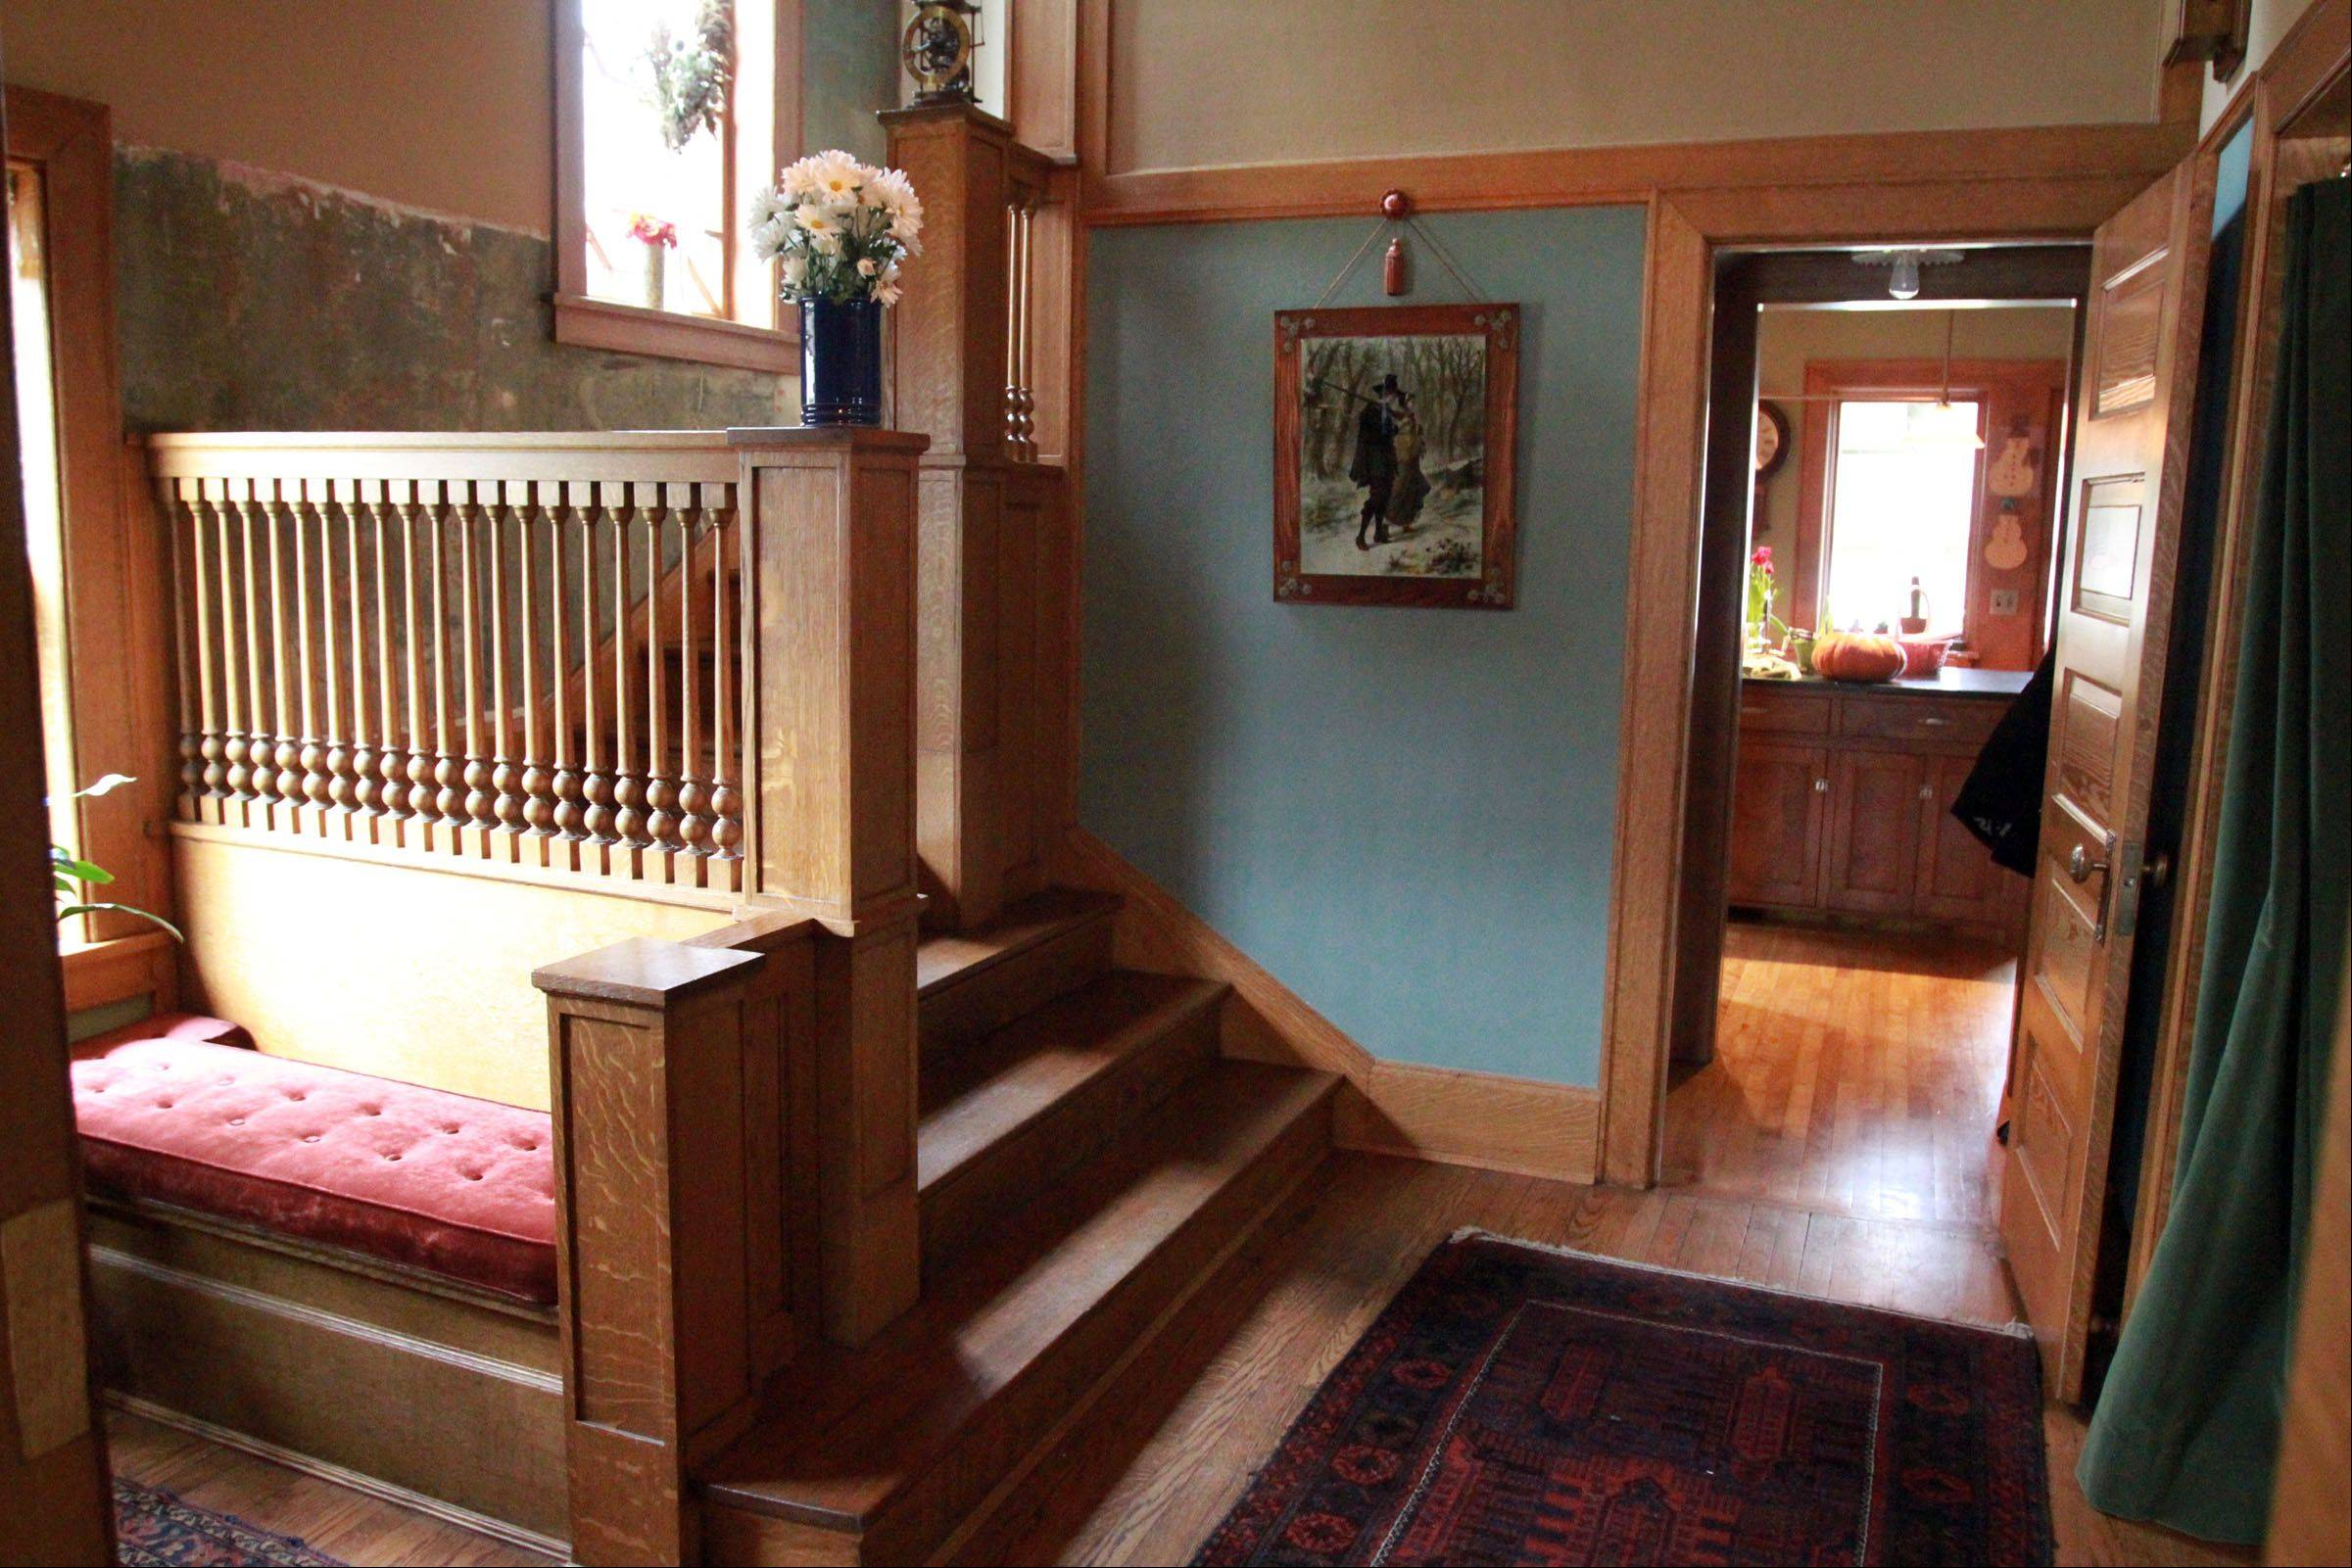 Staircase in Mark Donovan and Mary Ludgin's home.